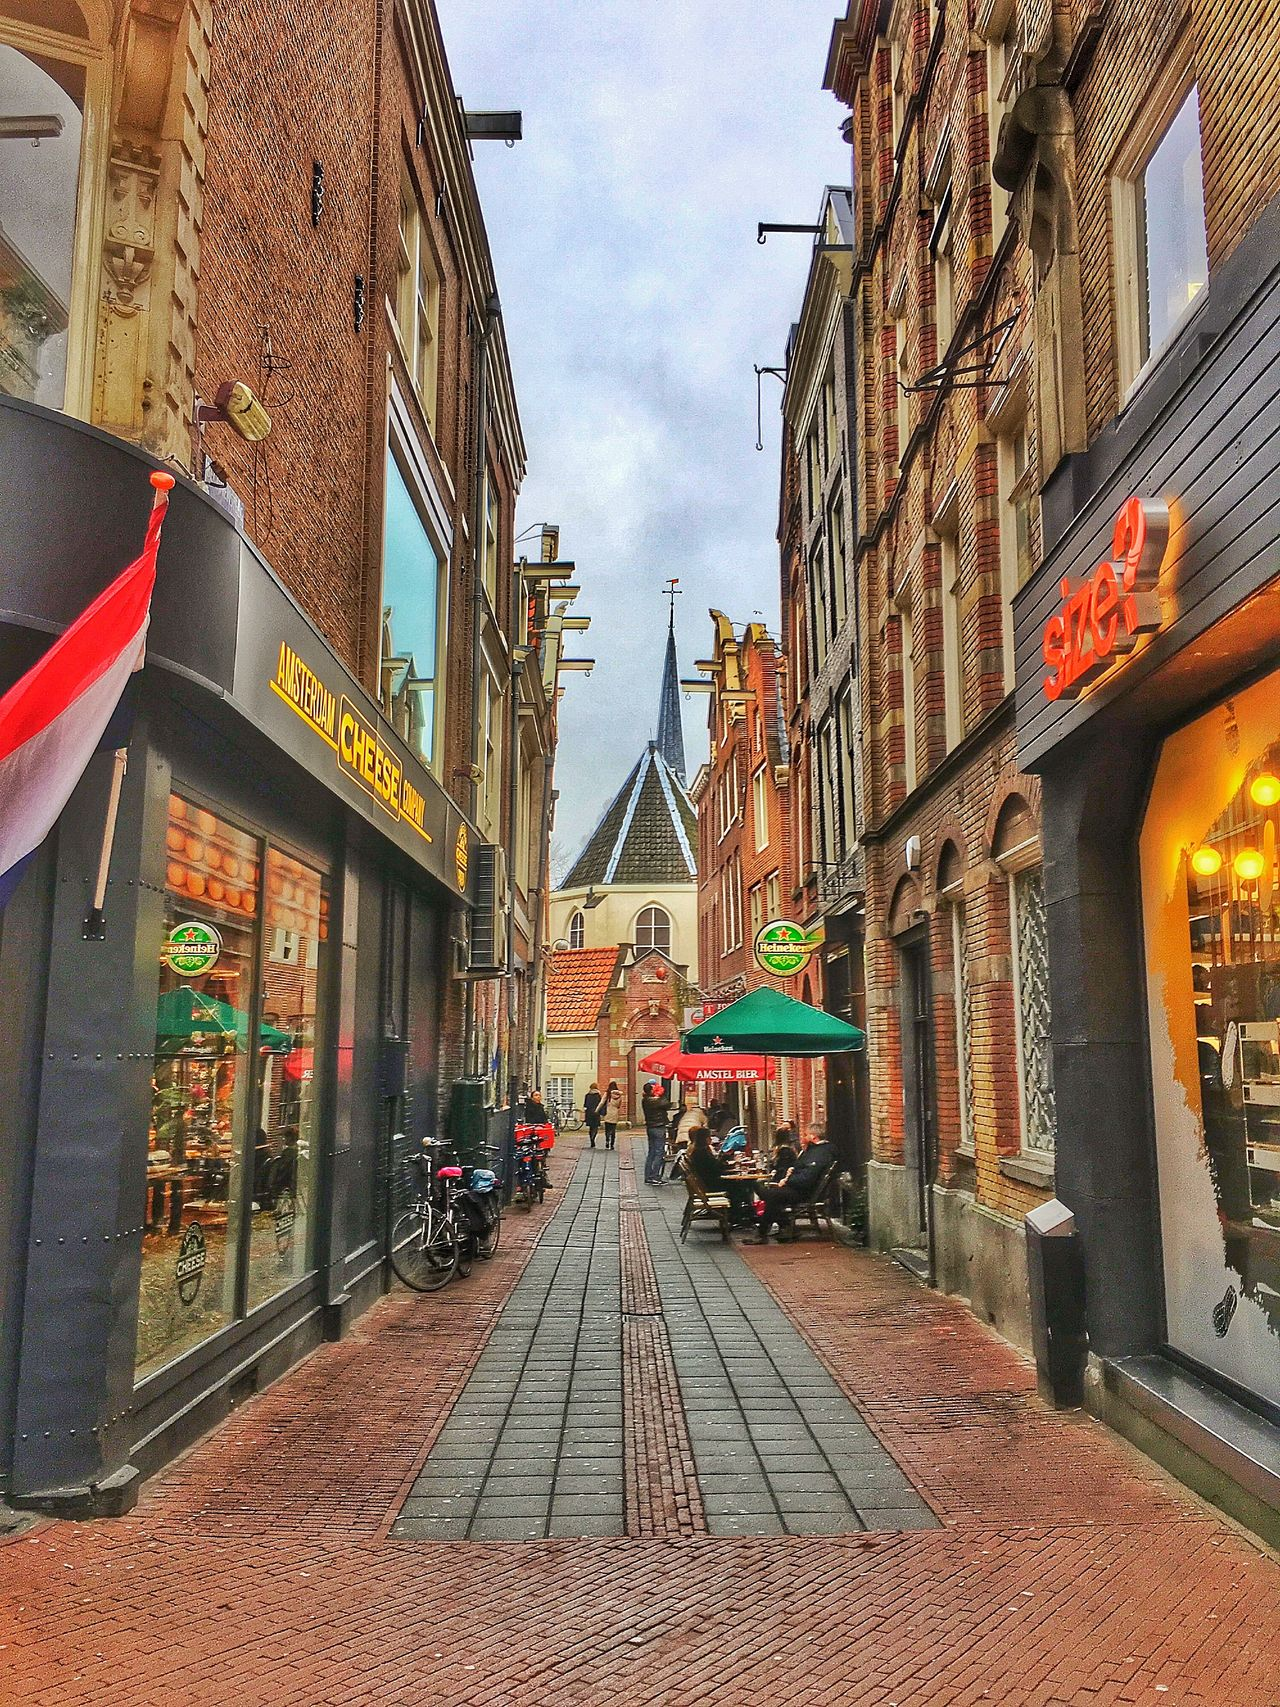 Amsterdam Amsterdamcity Architecture Beautiful Building Building Exterior Cafe City City City Life Citylife Holland Iamamsterdam Netherlands Niederlande Residential Structure Shopping Sky Street